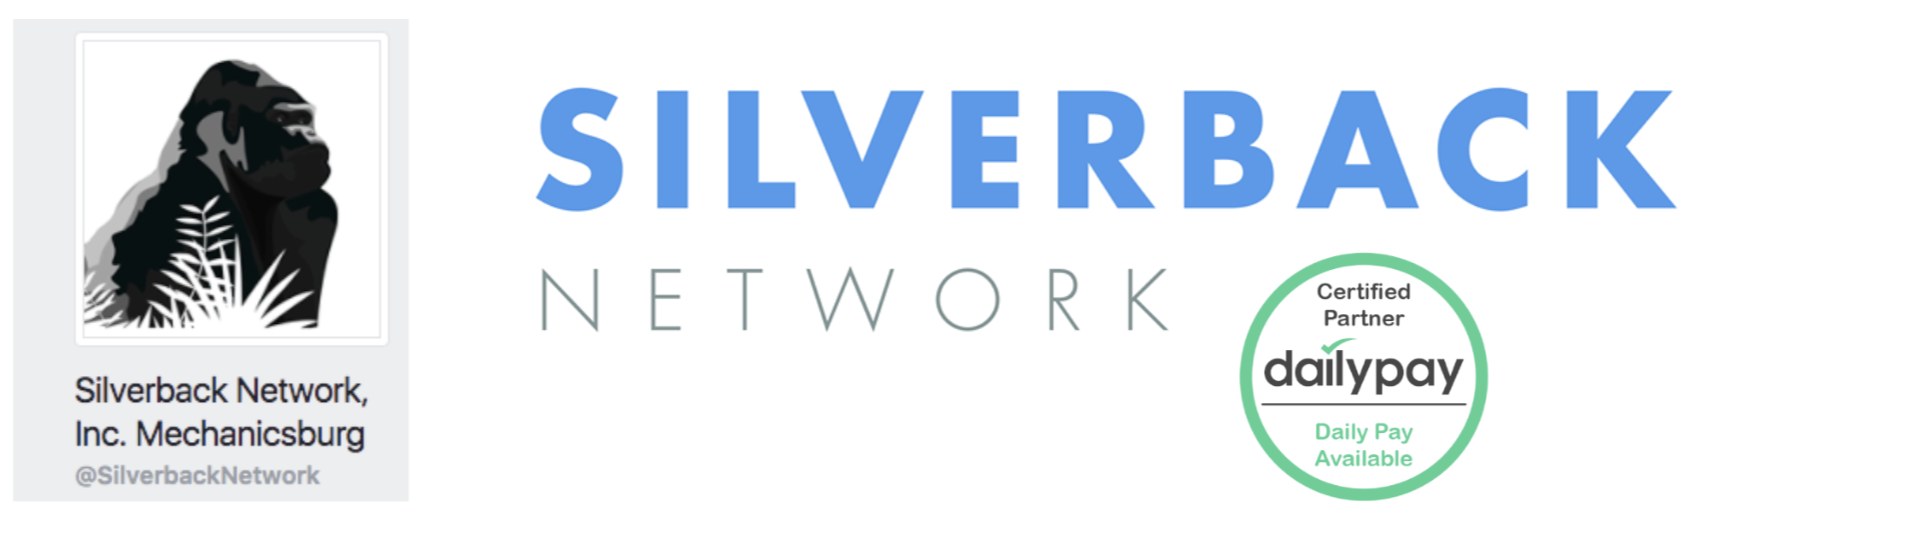 silverback_networks_lower_turnover.png